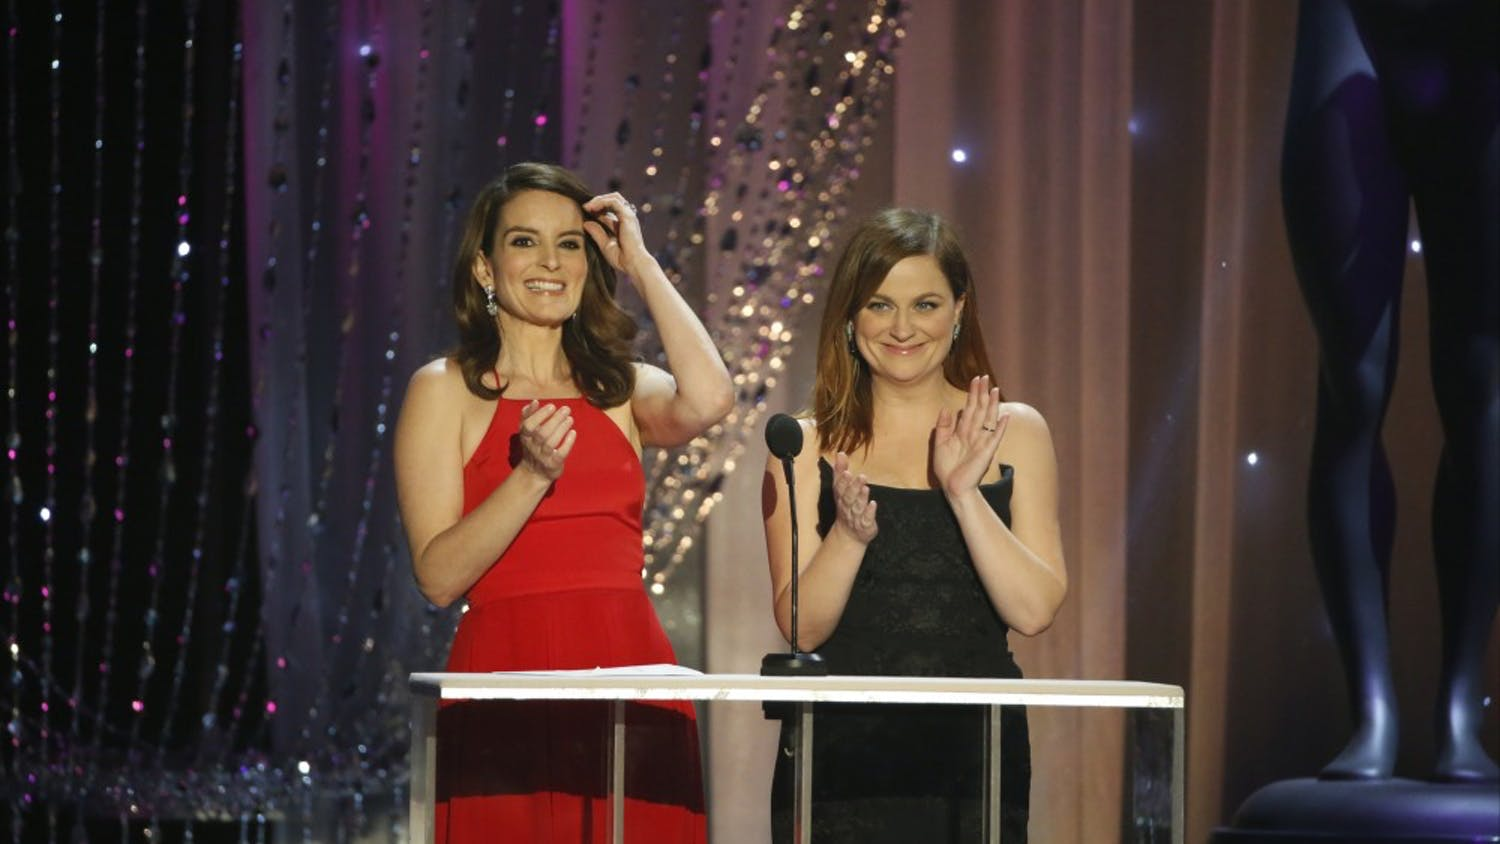 Tina Fey, left, and Amy Poehler on stage at the 22nd Annual Screen Actors Guild Awards at the Shrine Auditorium in Los Angeles on Saturday, Jan. 30, 2016. (Robert Gauthier/Los Angeles Times/TNS)